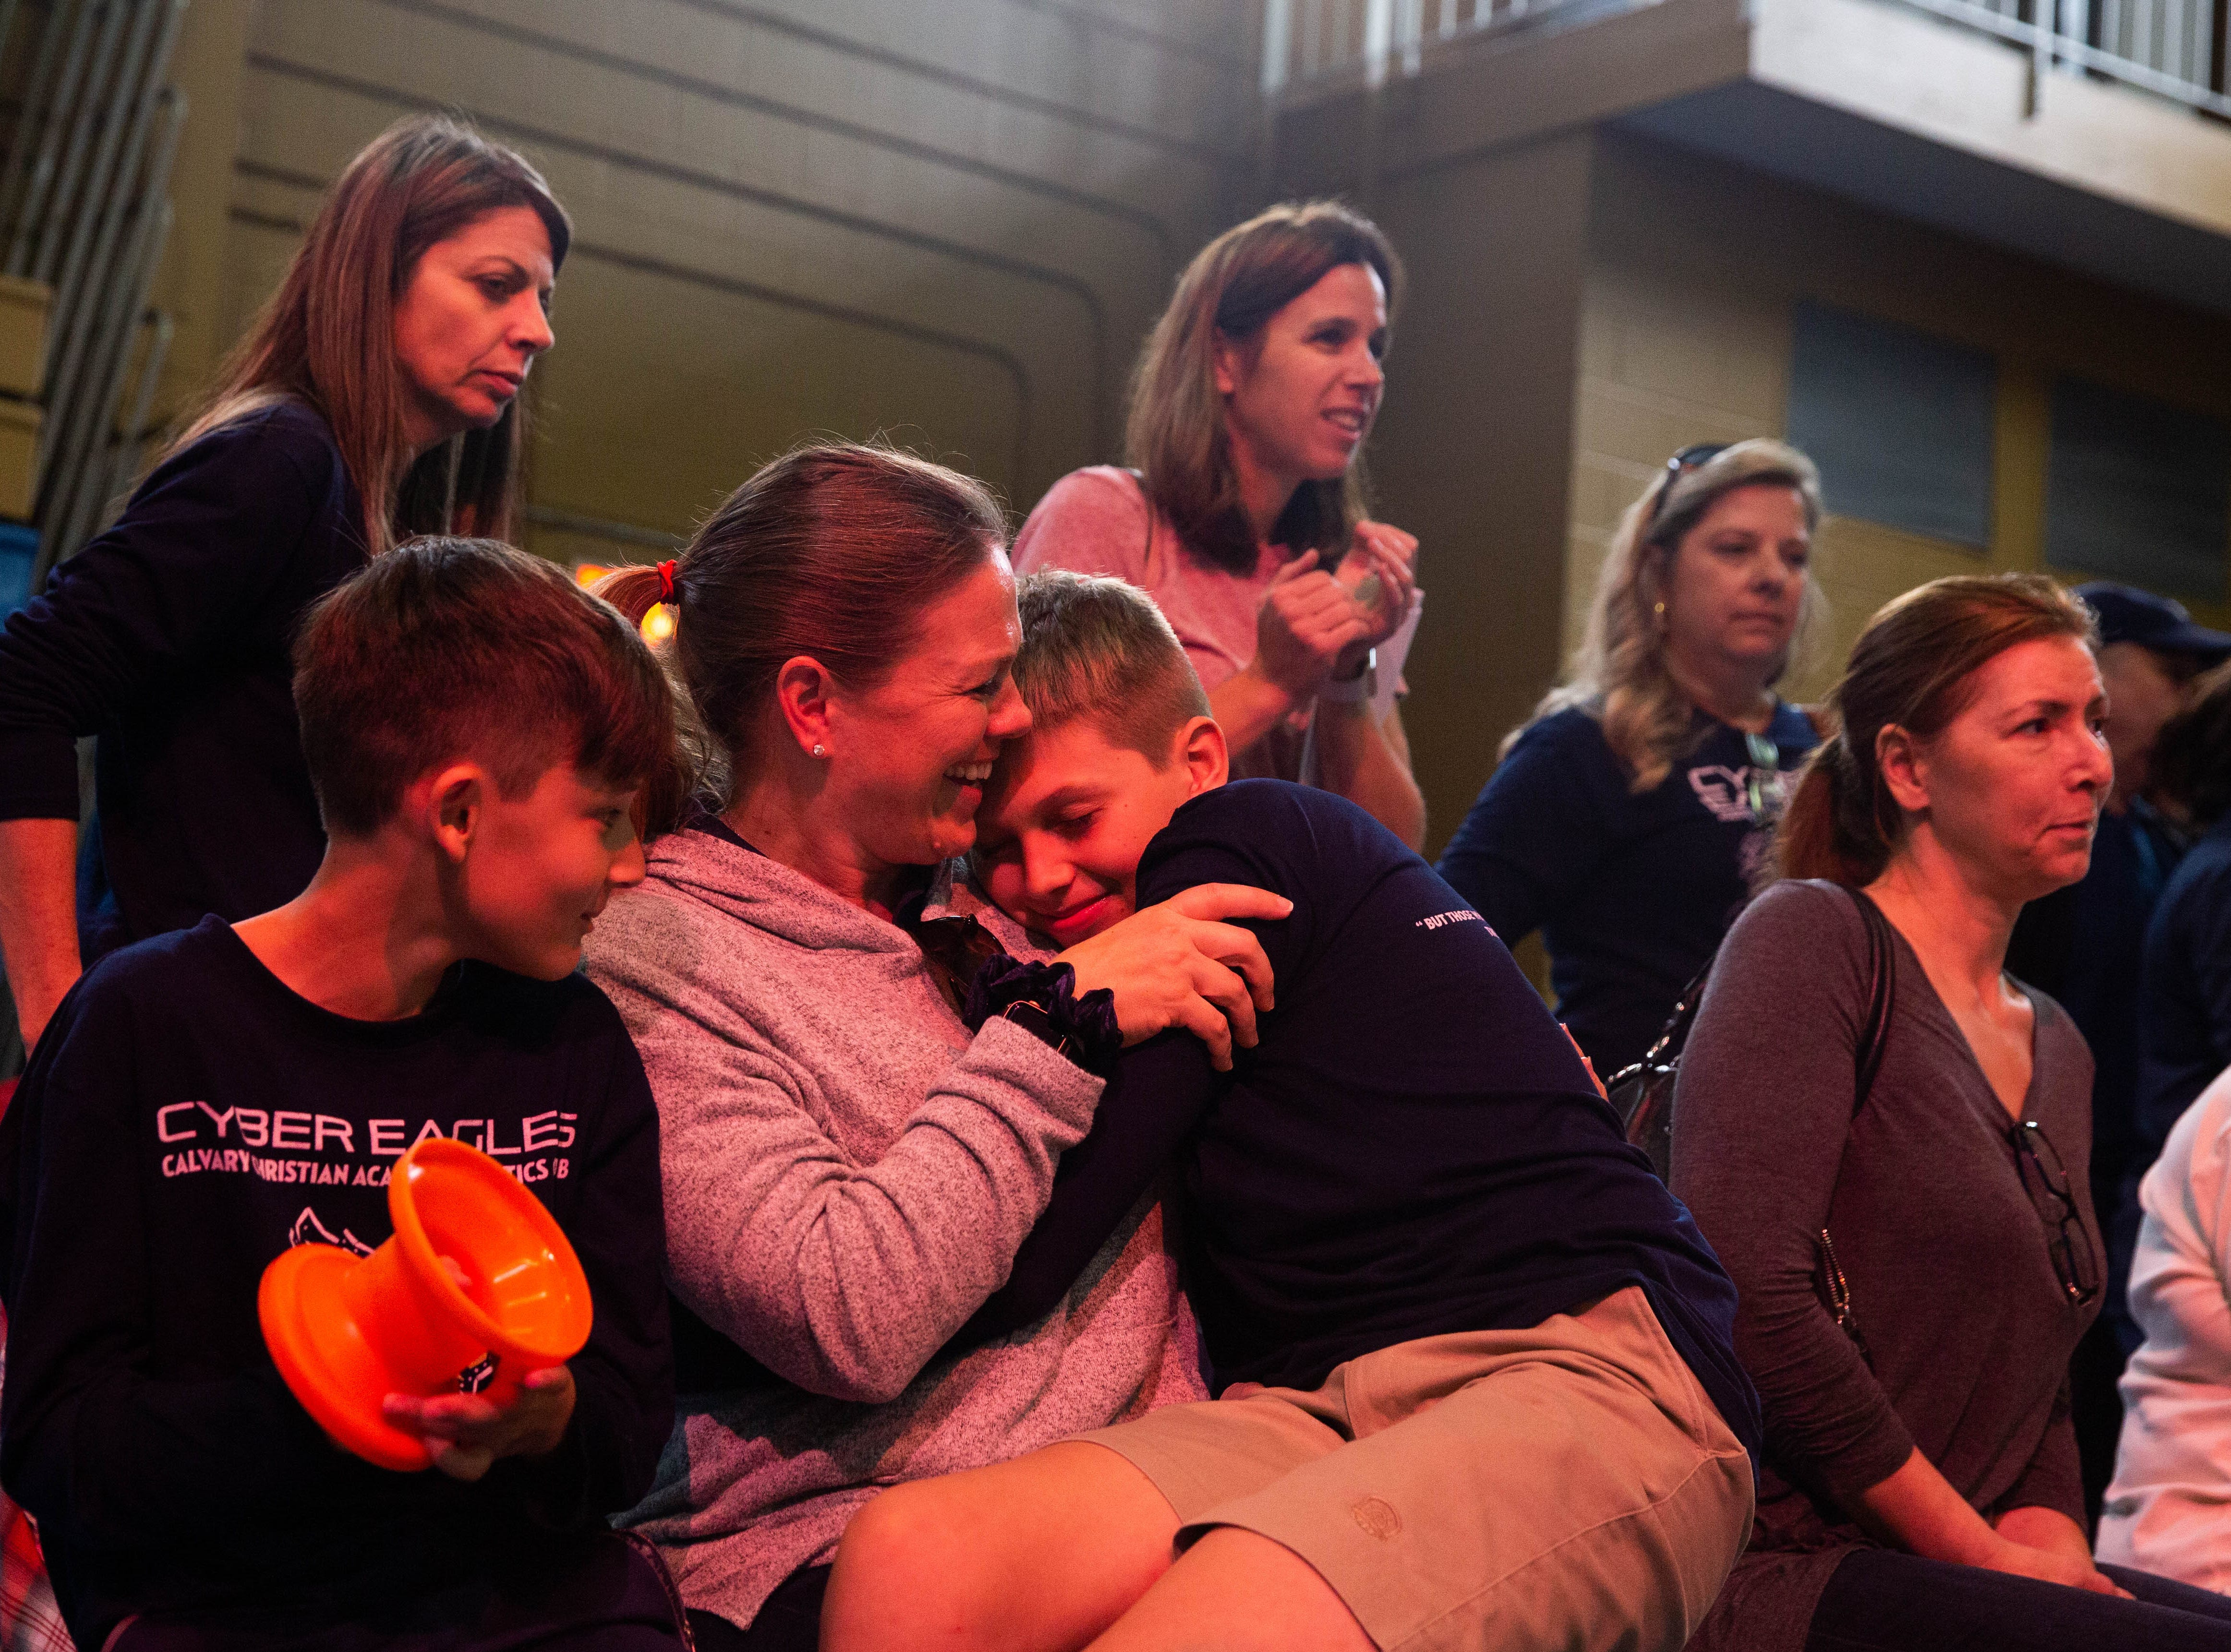 Debra D'Astino hugs her son Dylan D'Astino, who is part of the Calvary Christian Academy Cyber Eagles, at the VEX Robotics tournament at the Community School of Naples on February 9, 2019. The team drove from Fort Lauderdale to compete with over 25 teams.